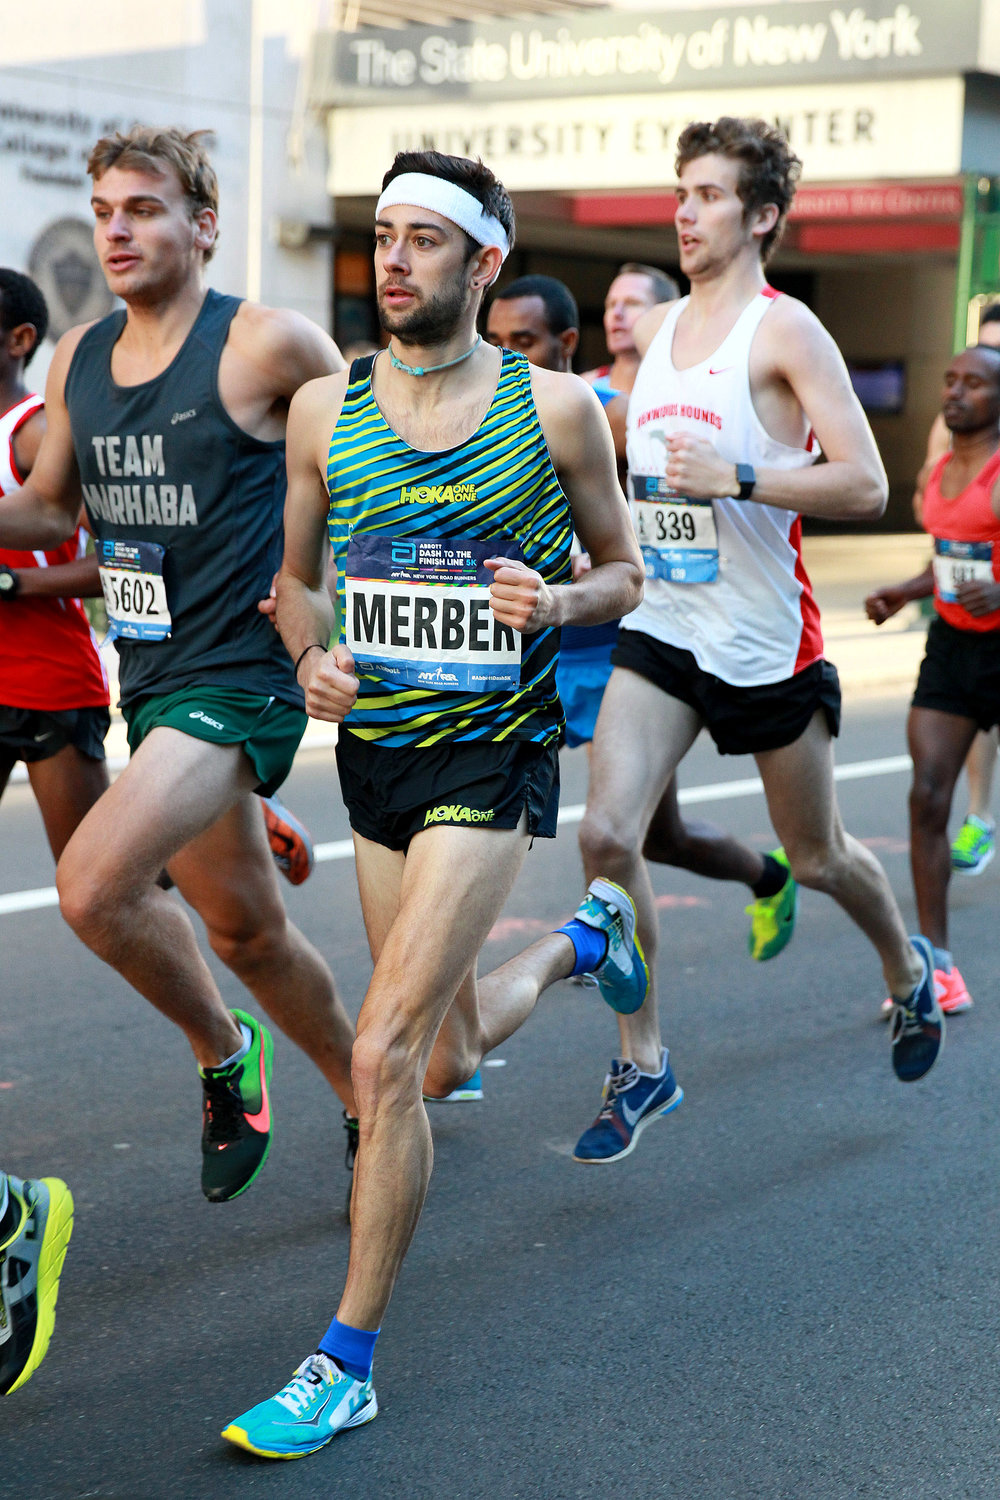 After racing the 2016 New Balance 5th Avenue Mile, Kyle Merber goes on to place third at the 2016 Abbott Dash to the Finish Line 5K.